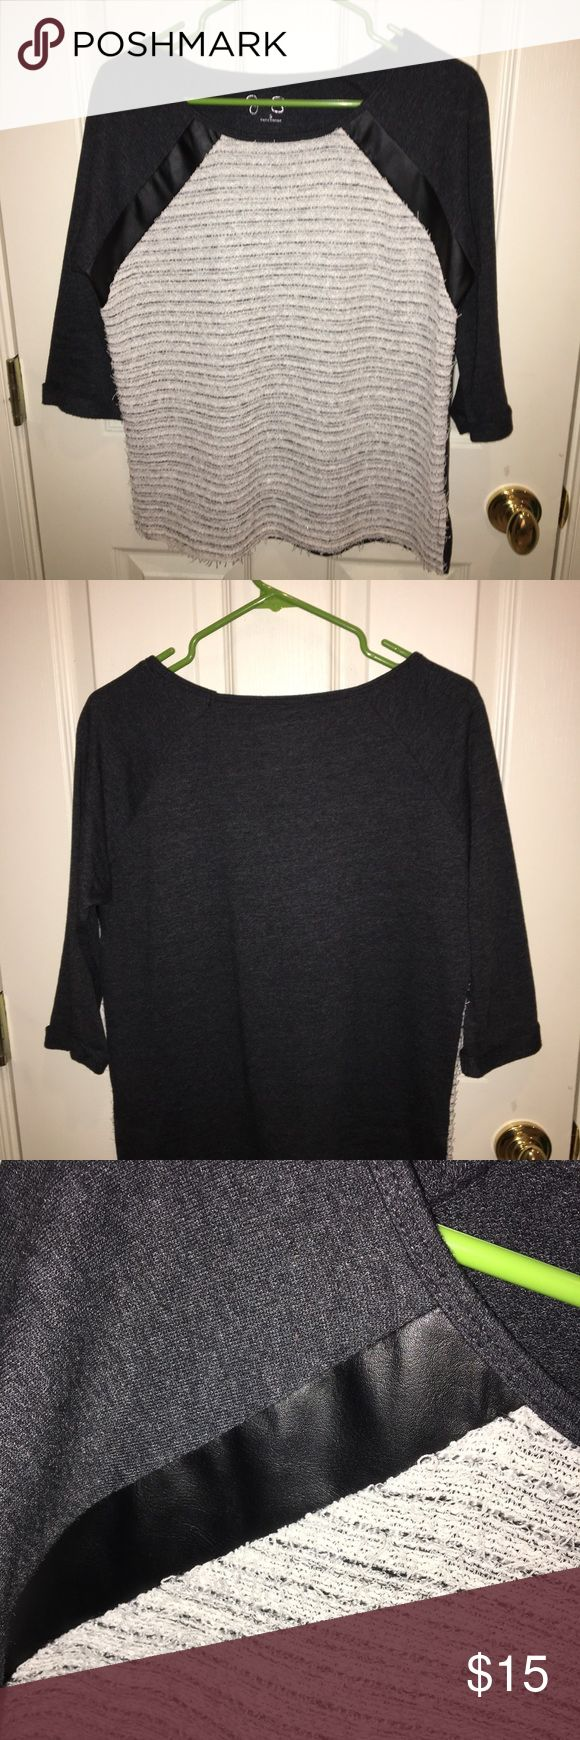 Jessica Simpson 3 quarter length shirt This is a S Jessica Simpson shirt with three quarter length sleeves. It is dark gray and has touches of black leather on the front. Only been worn once. Jessica Simpson Tops Tees - Long Sleeve